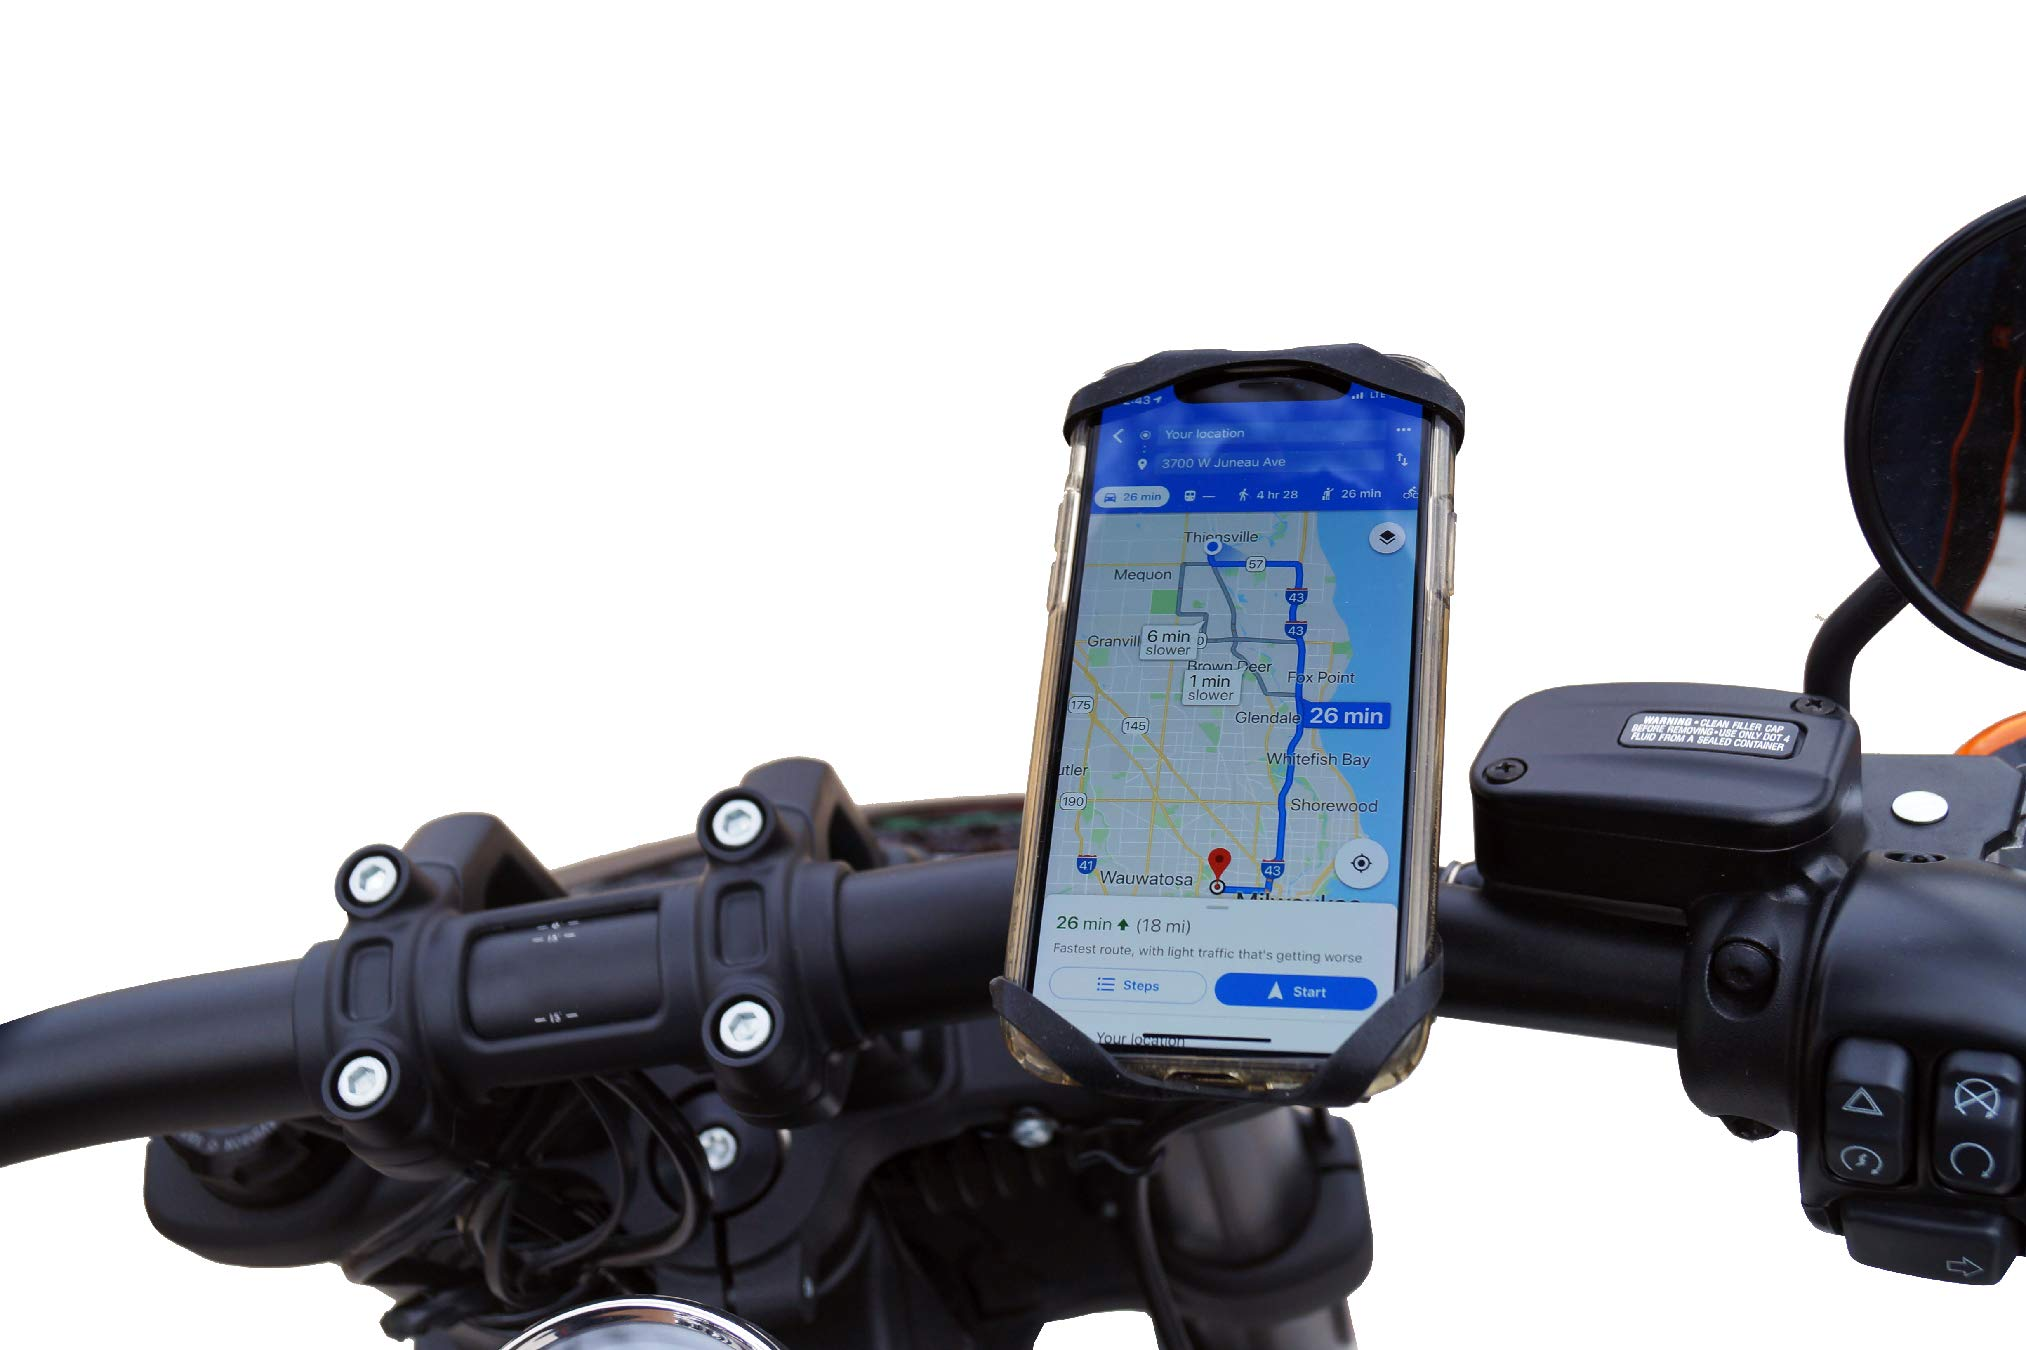 Moto TrailKASE -Universal phone holder for your Motorcycle, ATV, or Bicycle - Fits iPhone 7,8,9,X,XS,XR, iPhone 7, 8 Plus, iPhone XS Max, Samsung Galaxy S9, S8, S7